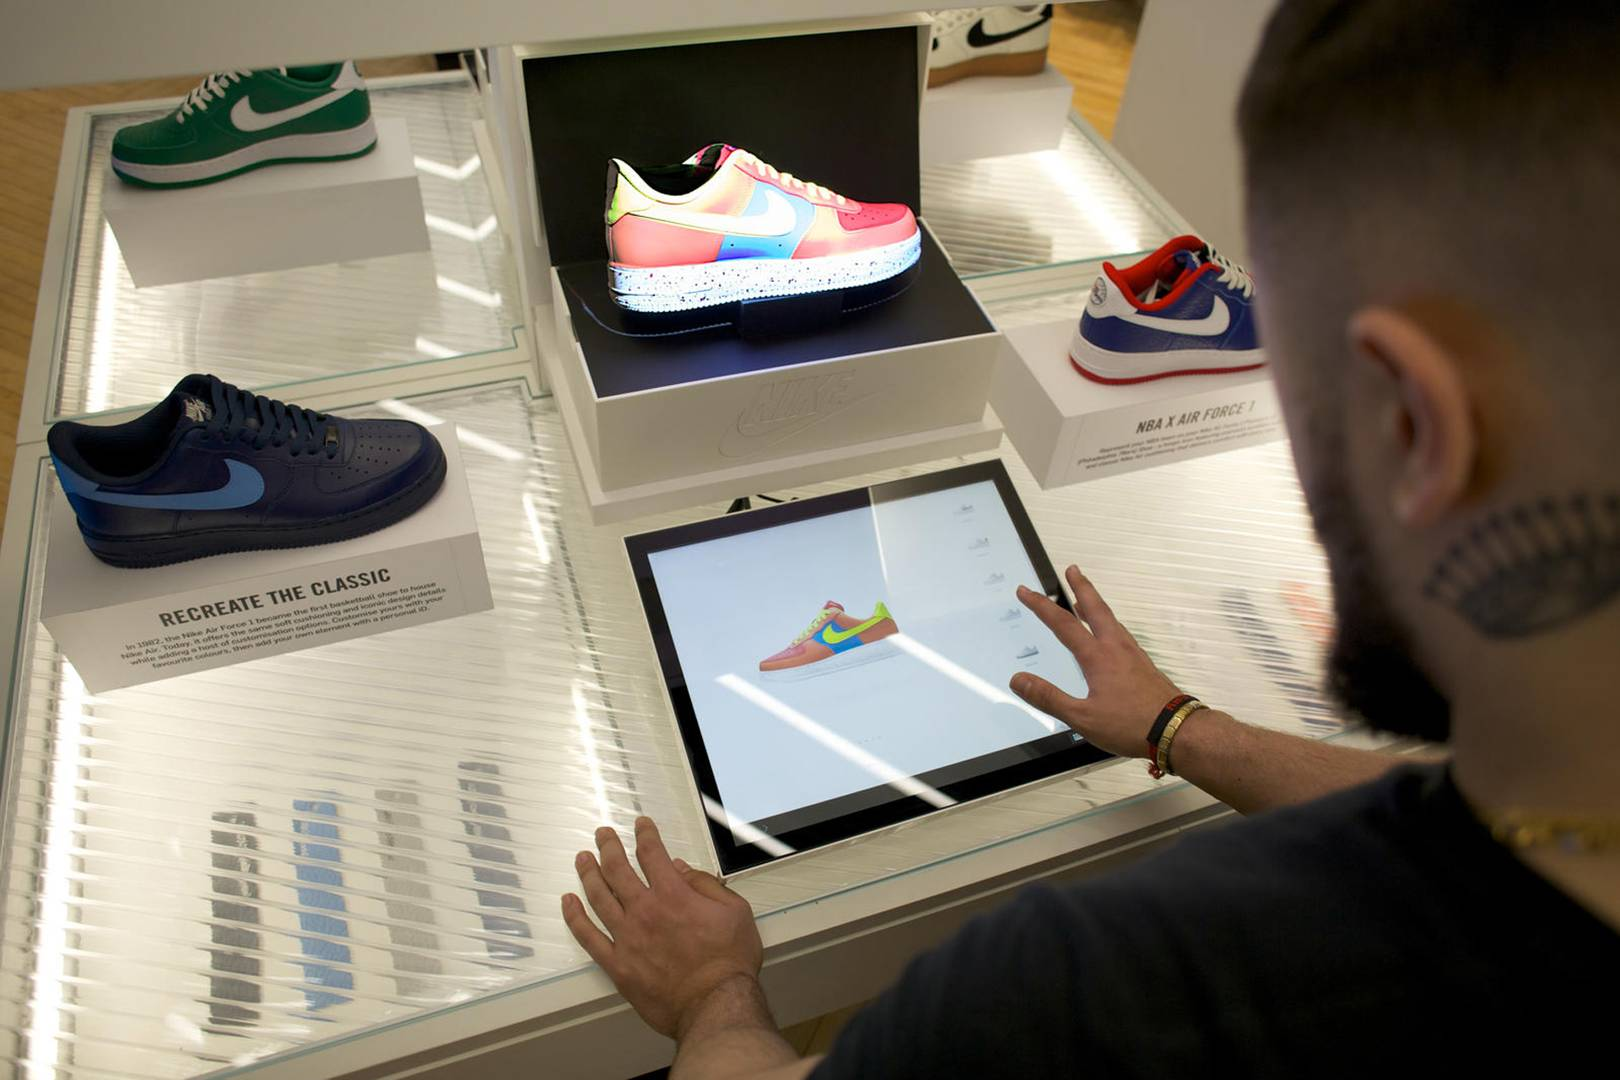 dec7e7841bab The new Nike iD Direct Studio is the future of customised kicks ...